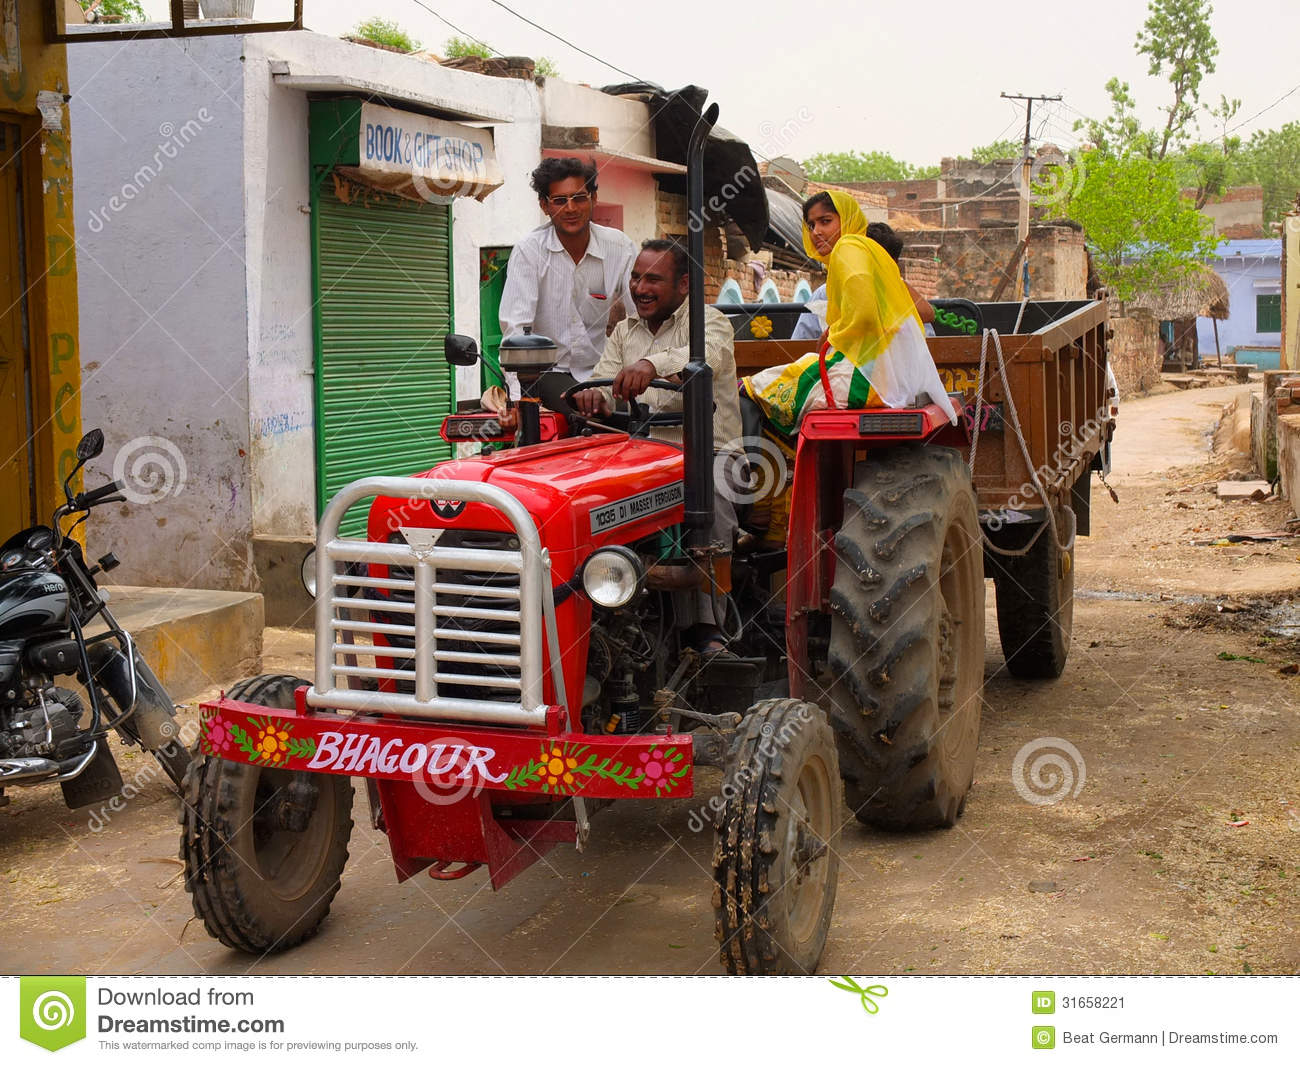 Different modes of transportation in hyderabad marriage